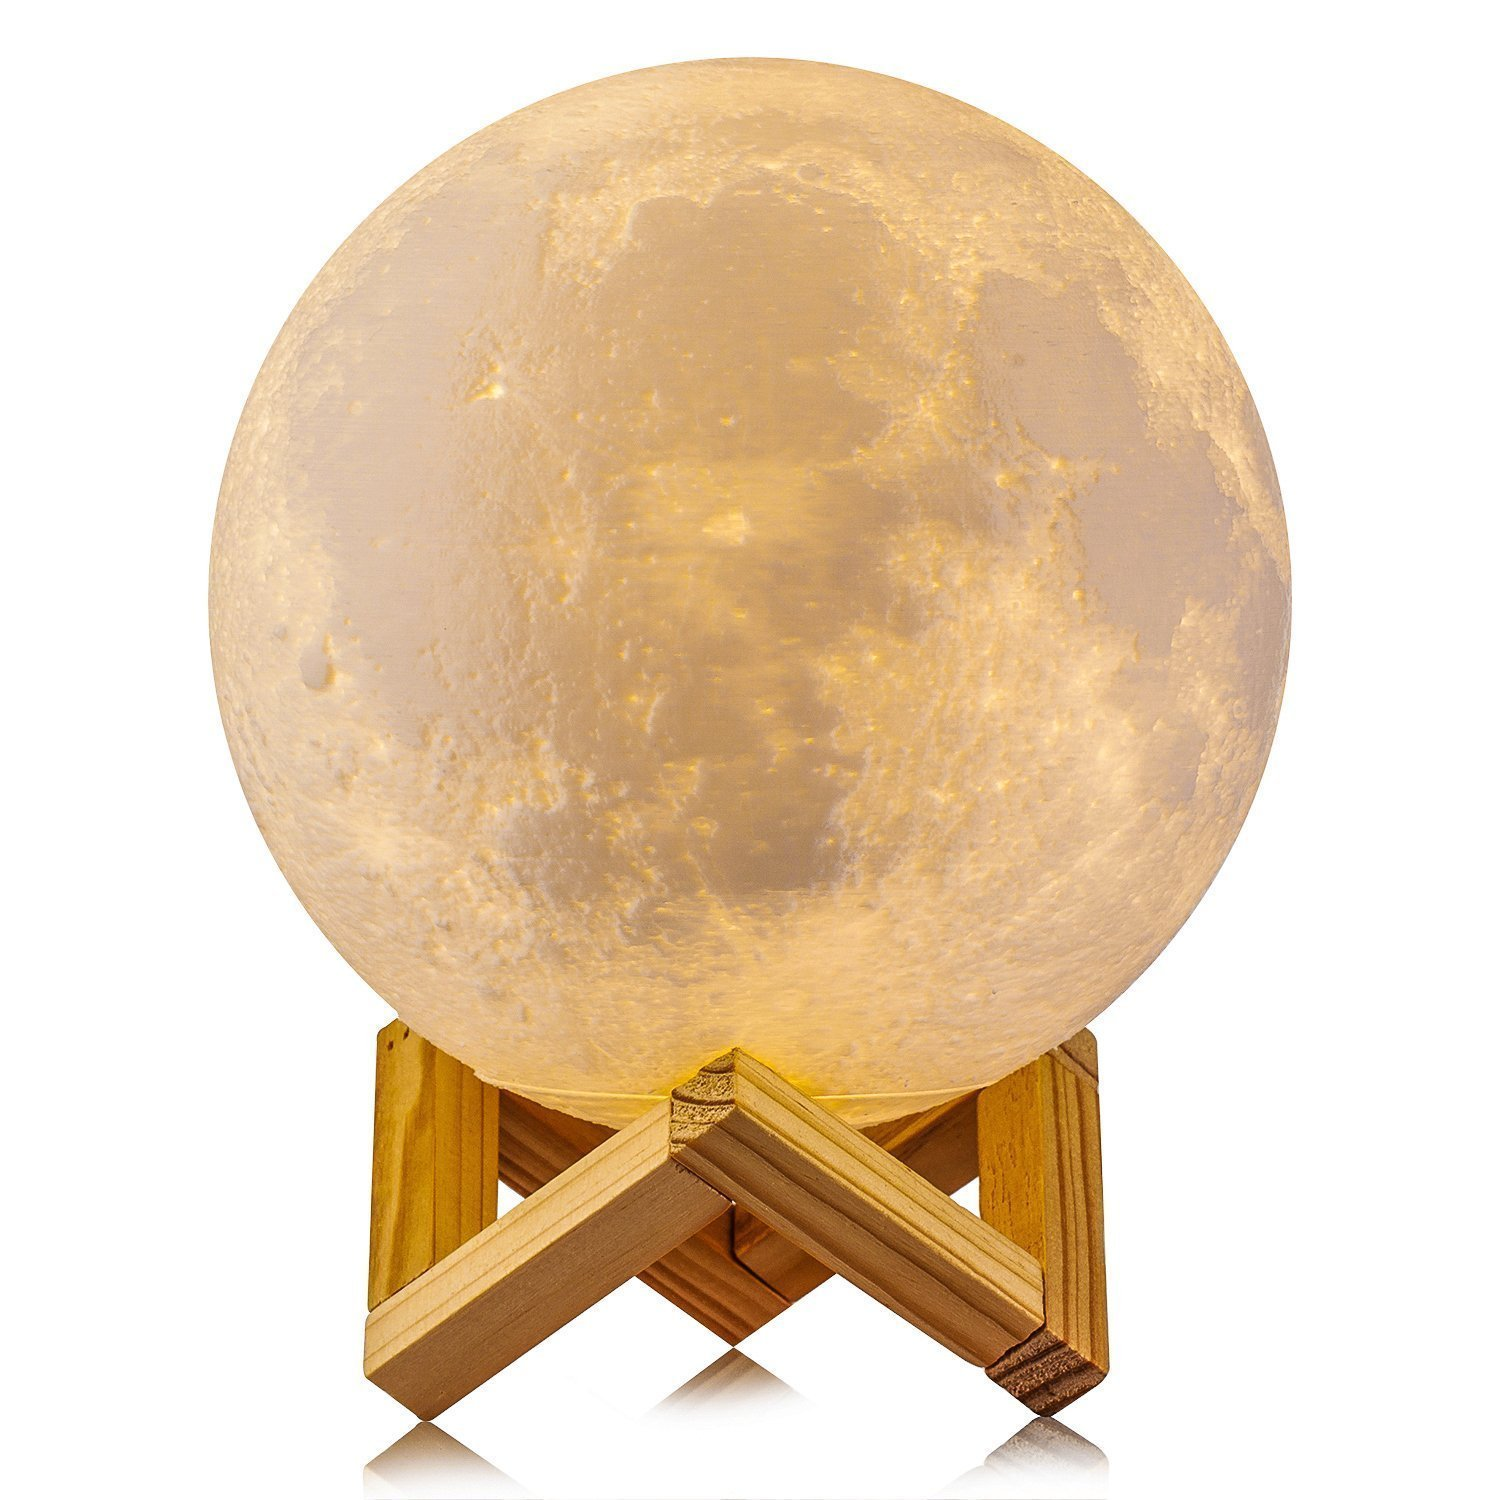 THE RESET Moon LAMP Lighting Night Light LED 3D Printing, Warm and Cool White Dimmable Touch Control Brightness USB Charging, Rechargeable Home Decorative Lamp, Wooden Stand Creative Gift 5.9 Inch